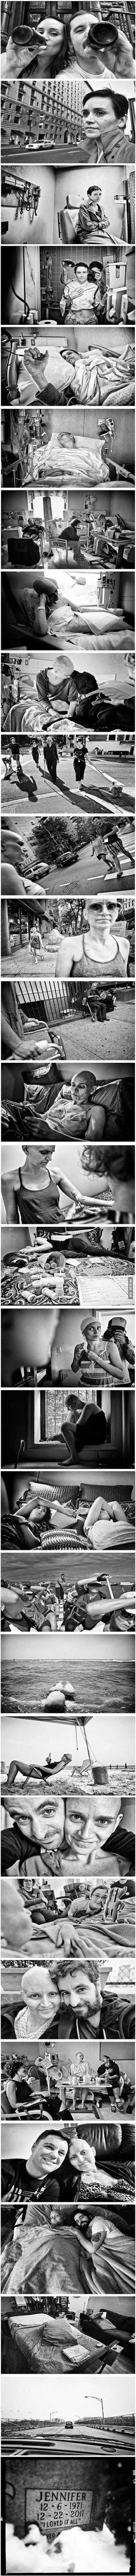 Photographer takes a picture every stage his girlfriend went through in her battle with cancer ♥